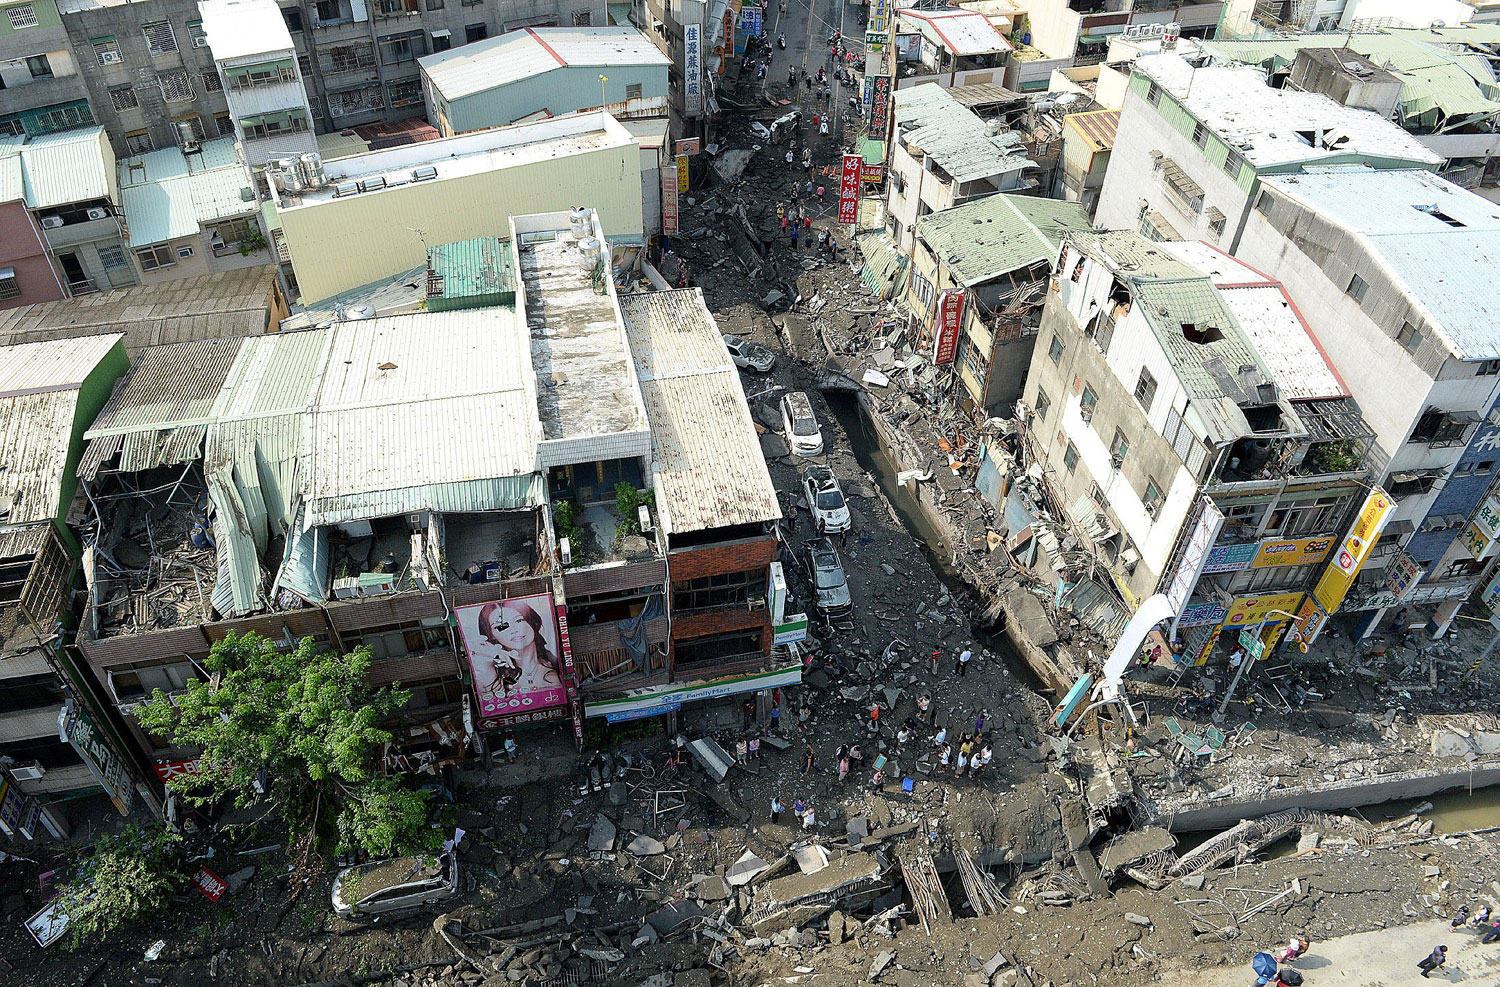 Destroyed roads and buildings after a gas leak explosions in Kaohsiung, southeast China's Taiwan on Aug. 1, 2014